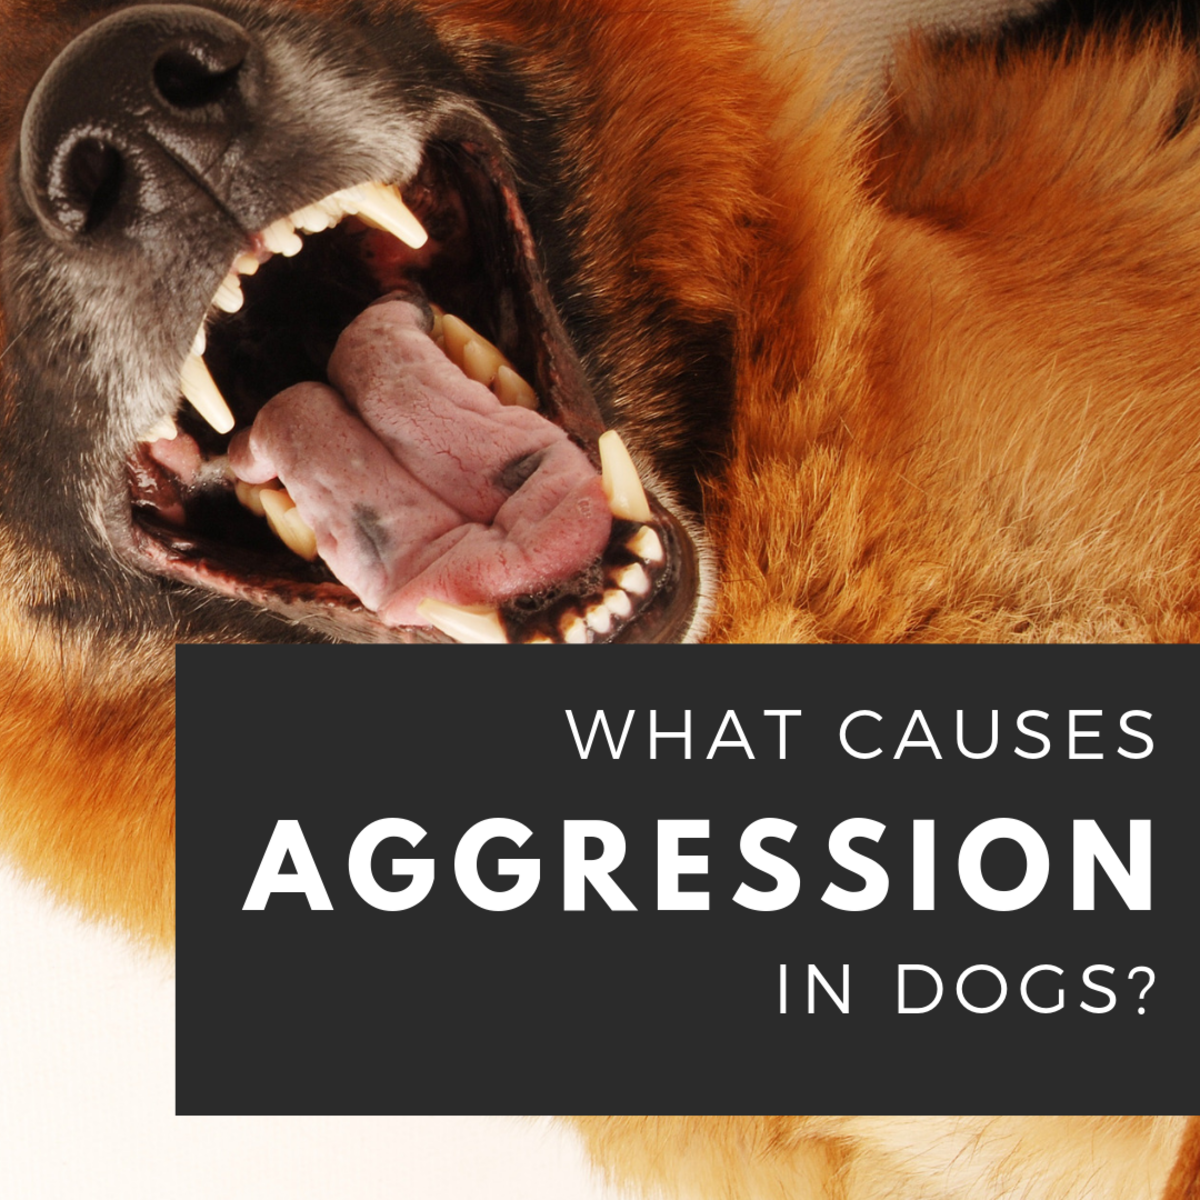 The Causes of Dog Aggression